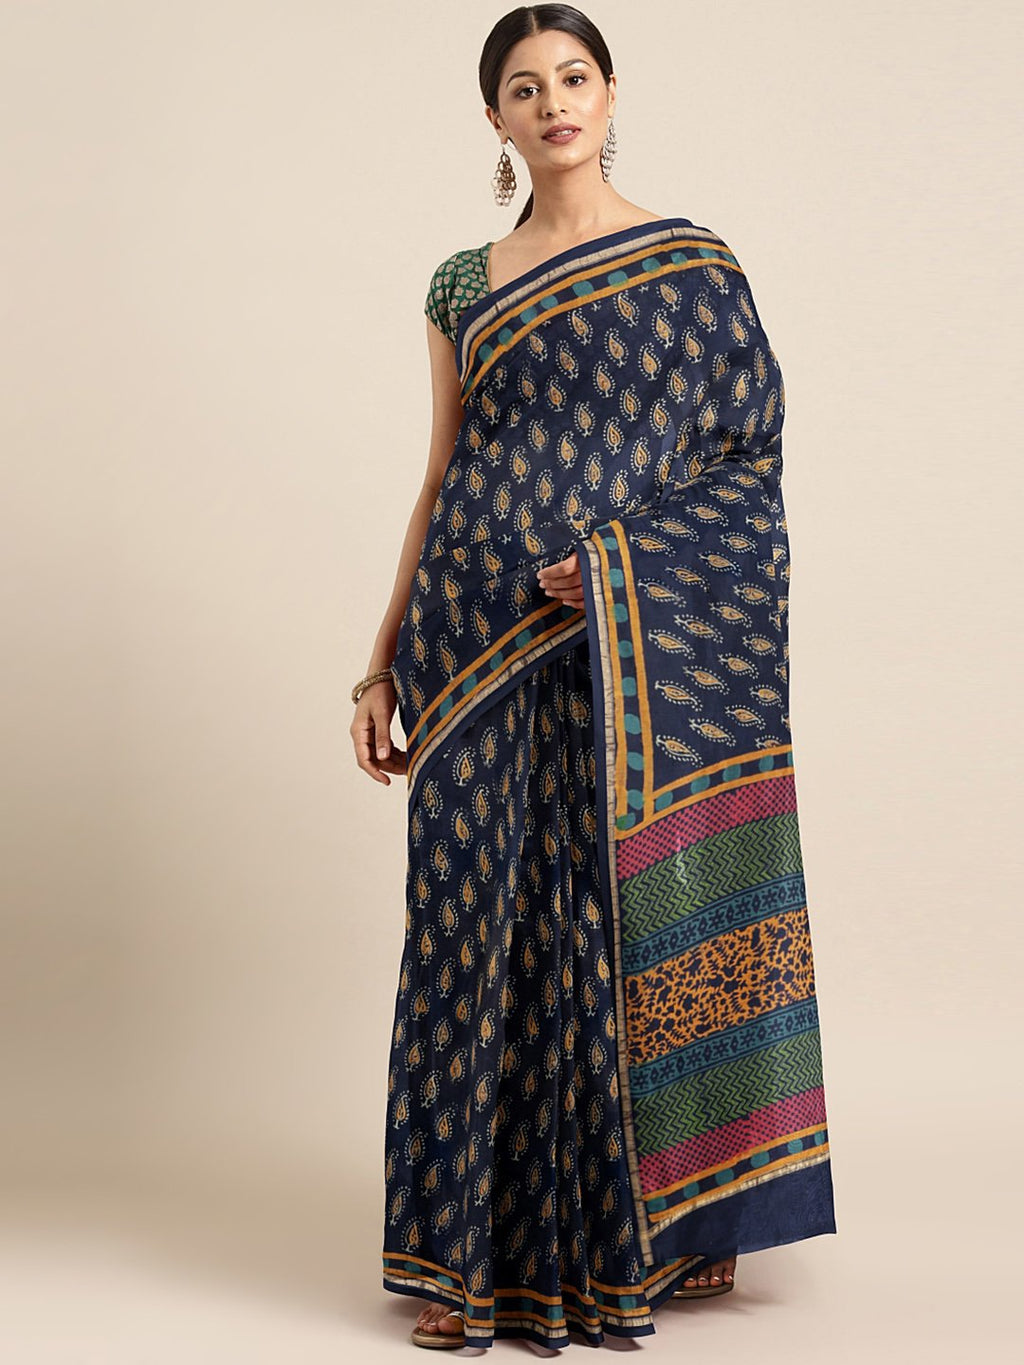 Navy Blue & Mustard Sanganeri Block Print Handcrafted Chanderi Saree-Saree-Kalakari India-BHKPSA0068-Chanderi, Dabu, Geographical Indication, Hand Blocks, Hand Crafted, Heritage Prints, Indigo, Natural Dyes, Sarees, Sustainable Fabrics-[Linen,Ethnic,wear,Fashionista,Handloom,Handicraft,Indigo,blockprint,block,print,Cotton,Chanderi,Blue, latest,classy,party,bollywood,trendy,summer,style,traditional,formal,elegant,unique,style,hand,block,print, dabu,booti,gift,present,glamorous,affordable,collecti